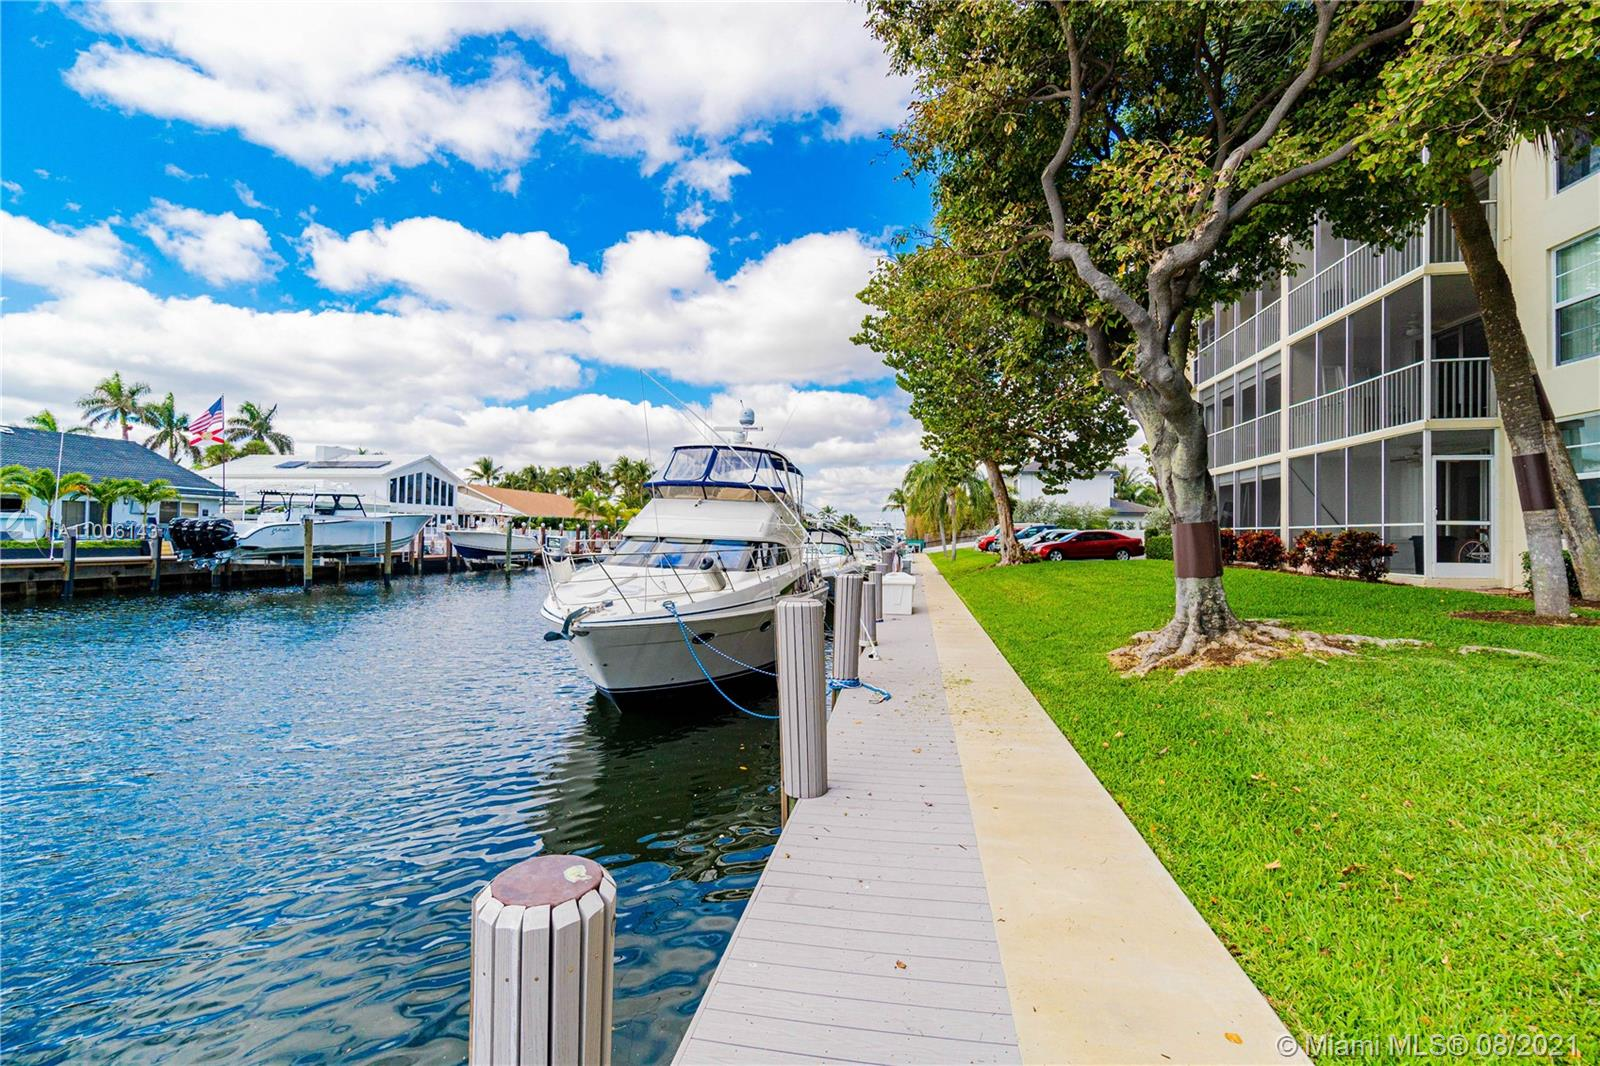 """Come see this """"IMMACULATE*Waterfront* Apartment 1Bed/1.5Bath *FURNISHED* in Palm Aire at Coral Key, conveniently situated in the City of Lighthouse Point. Very nice unit in Excellent condition on the second floor. The kitchen features SS appliances & granite countertops. Tiled throughout. This is a Resort Style Community on the Water with Dockage Available and Amenities including Pool & BBQ Area. Plenty of guest parking. Screened Balcony ***Great Location*** Completely remodeled with all that you need to move in, just bring your toothbrush and clothes!!! ---Make this place your Home and Enjoy the RELAXING Waterfront Lifestyle. ---"""